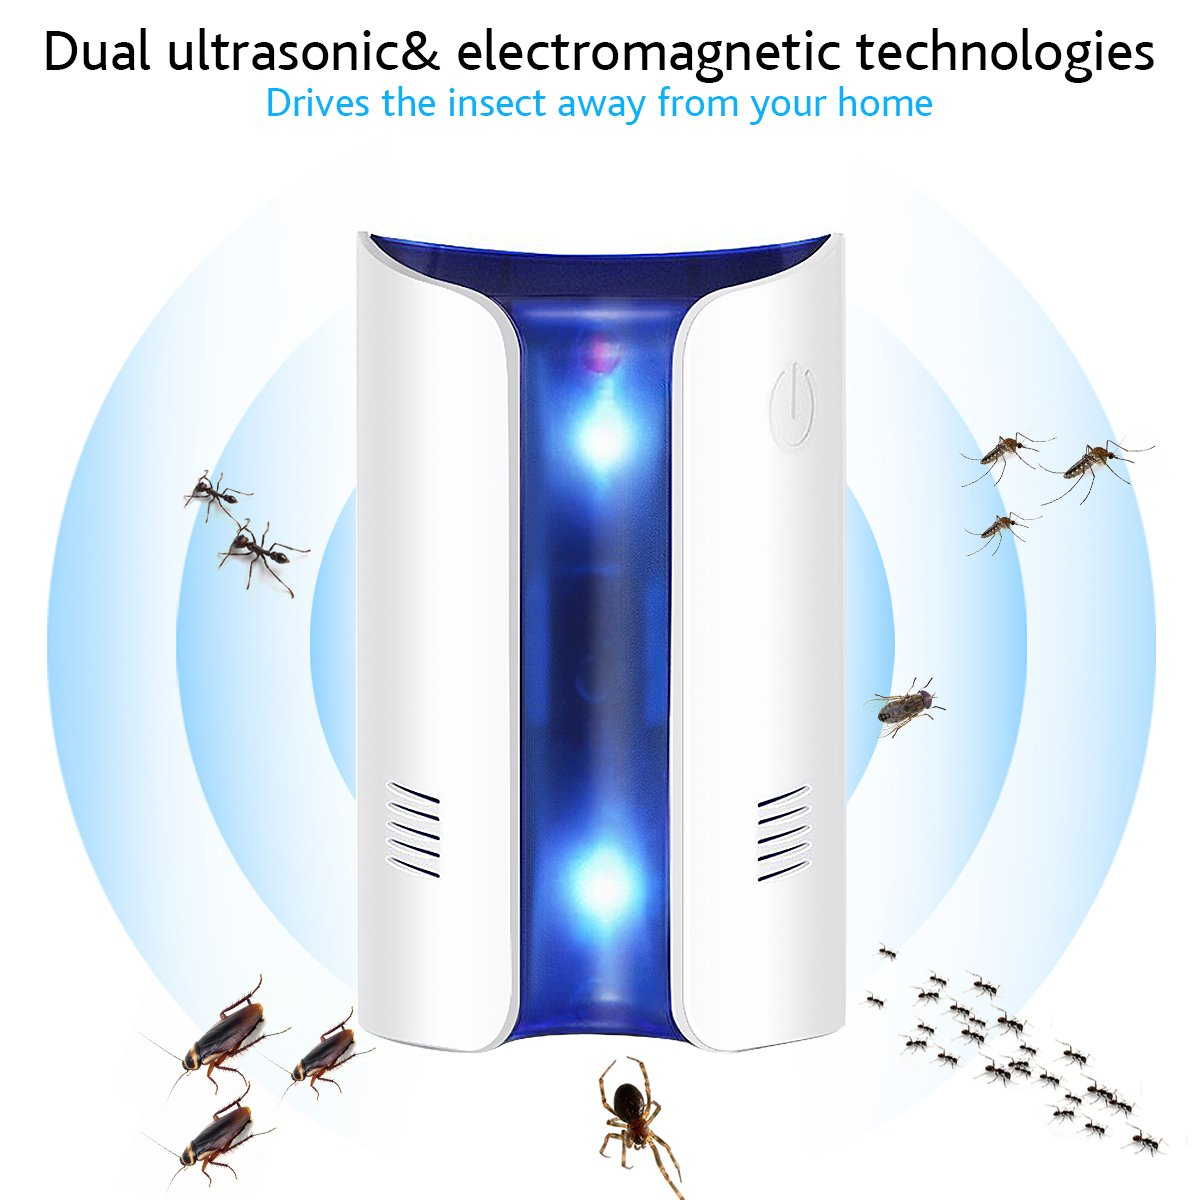 INKERSCOOP [2 Pack] Ultrasonic Pest Repellent, 2018 Version electromagnetic Pest Repellent - Plug in Home Indoor & Outdoor Repeller, Get Rid of Mosquito, Ant, Flea, Rats, Fruit Fly, Rodent, Insect